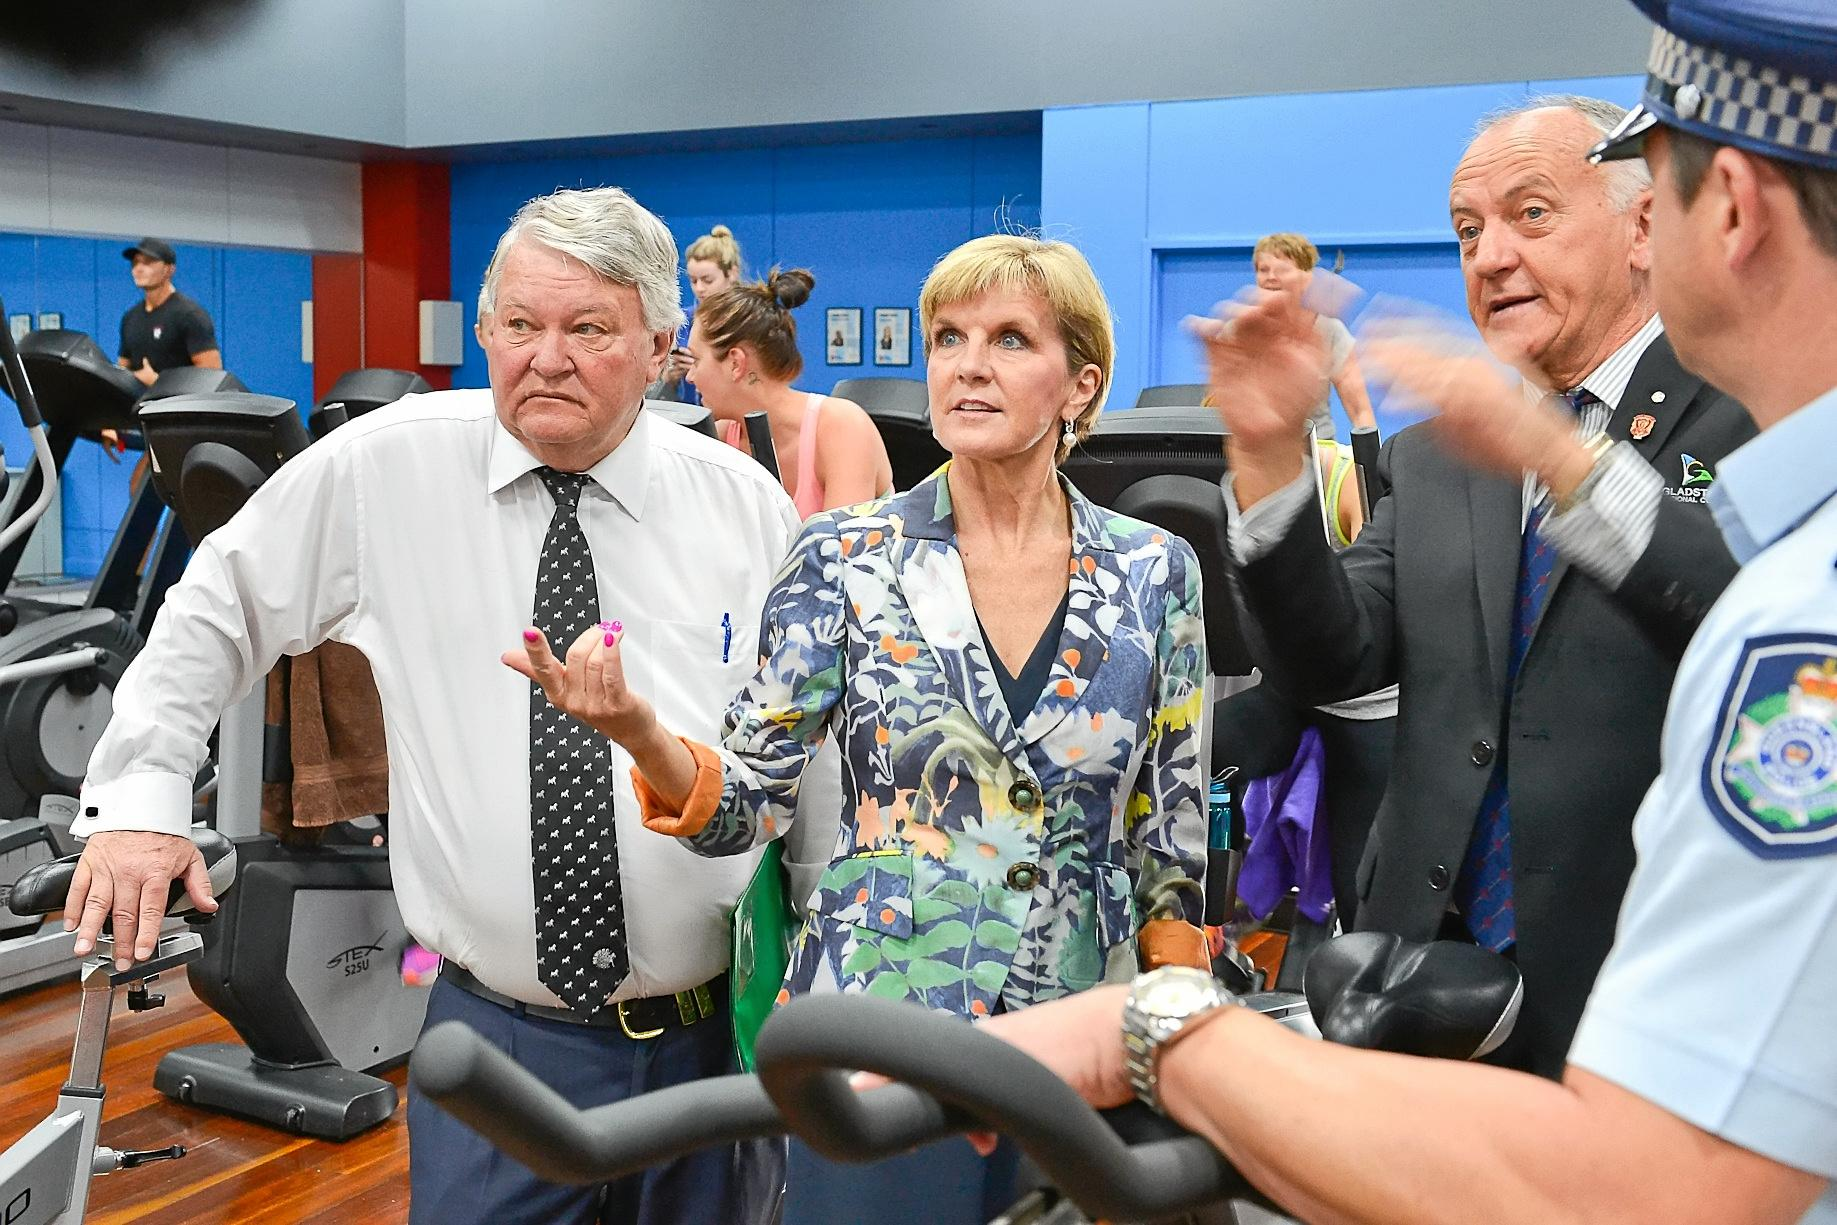 Member for Flynn Ken O'Dowd with the deputy leader of the Liberal Party minister Julie Bishop in the Gladstone PCYC Gym with chairman Glenn Churchill.  Photo Mike Richards / The Observer